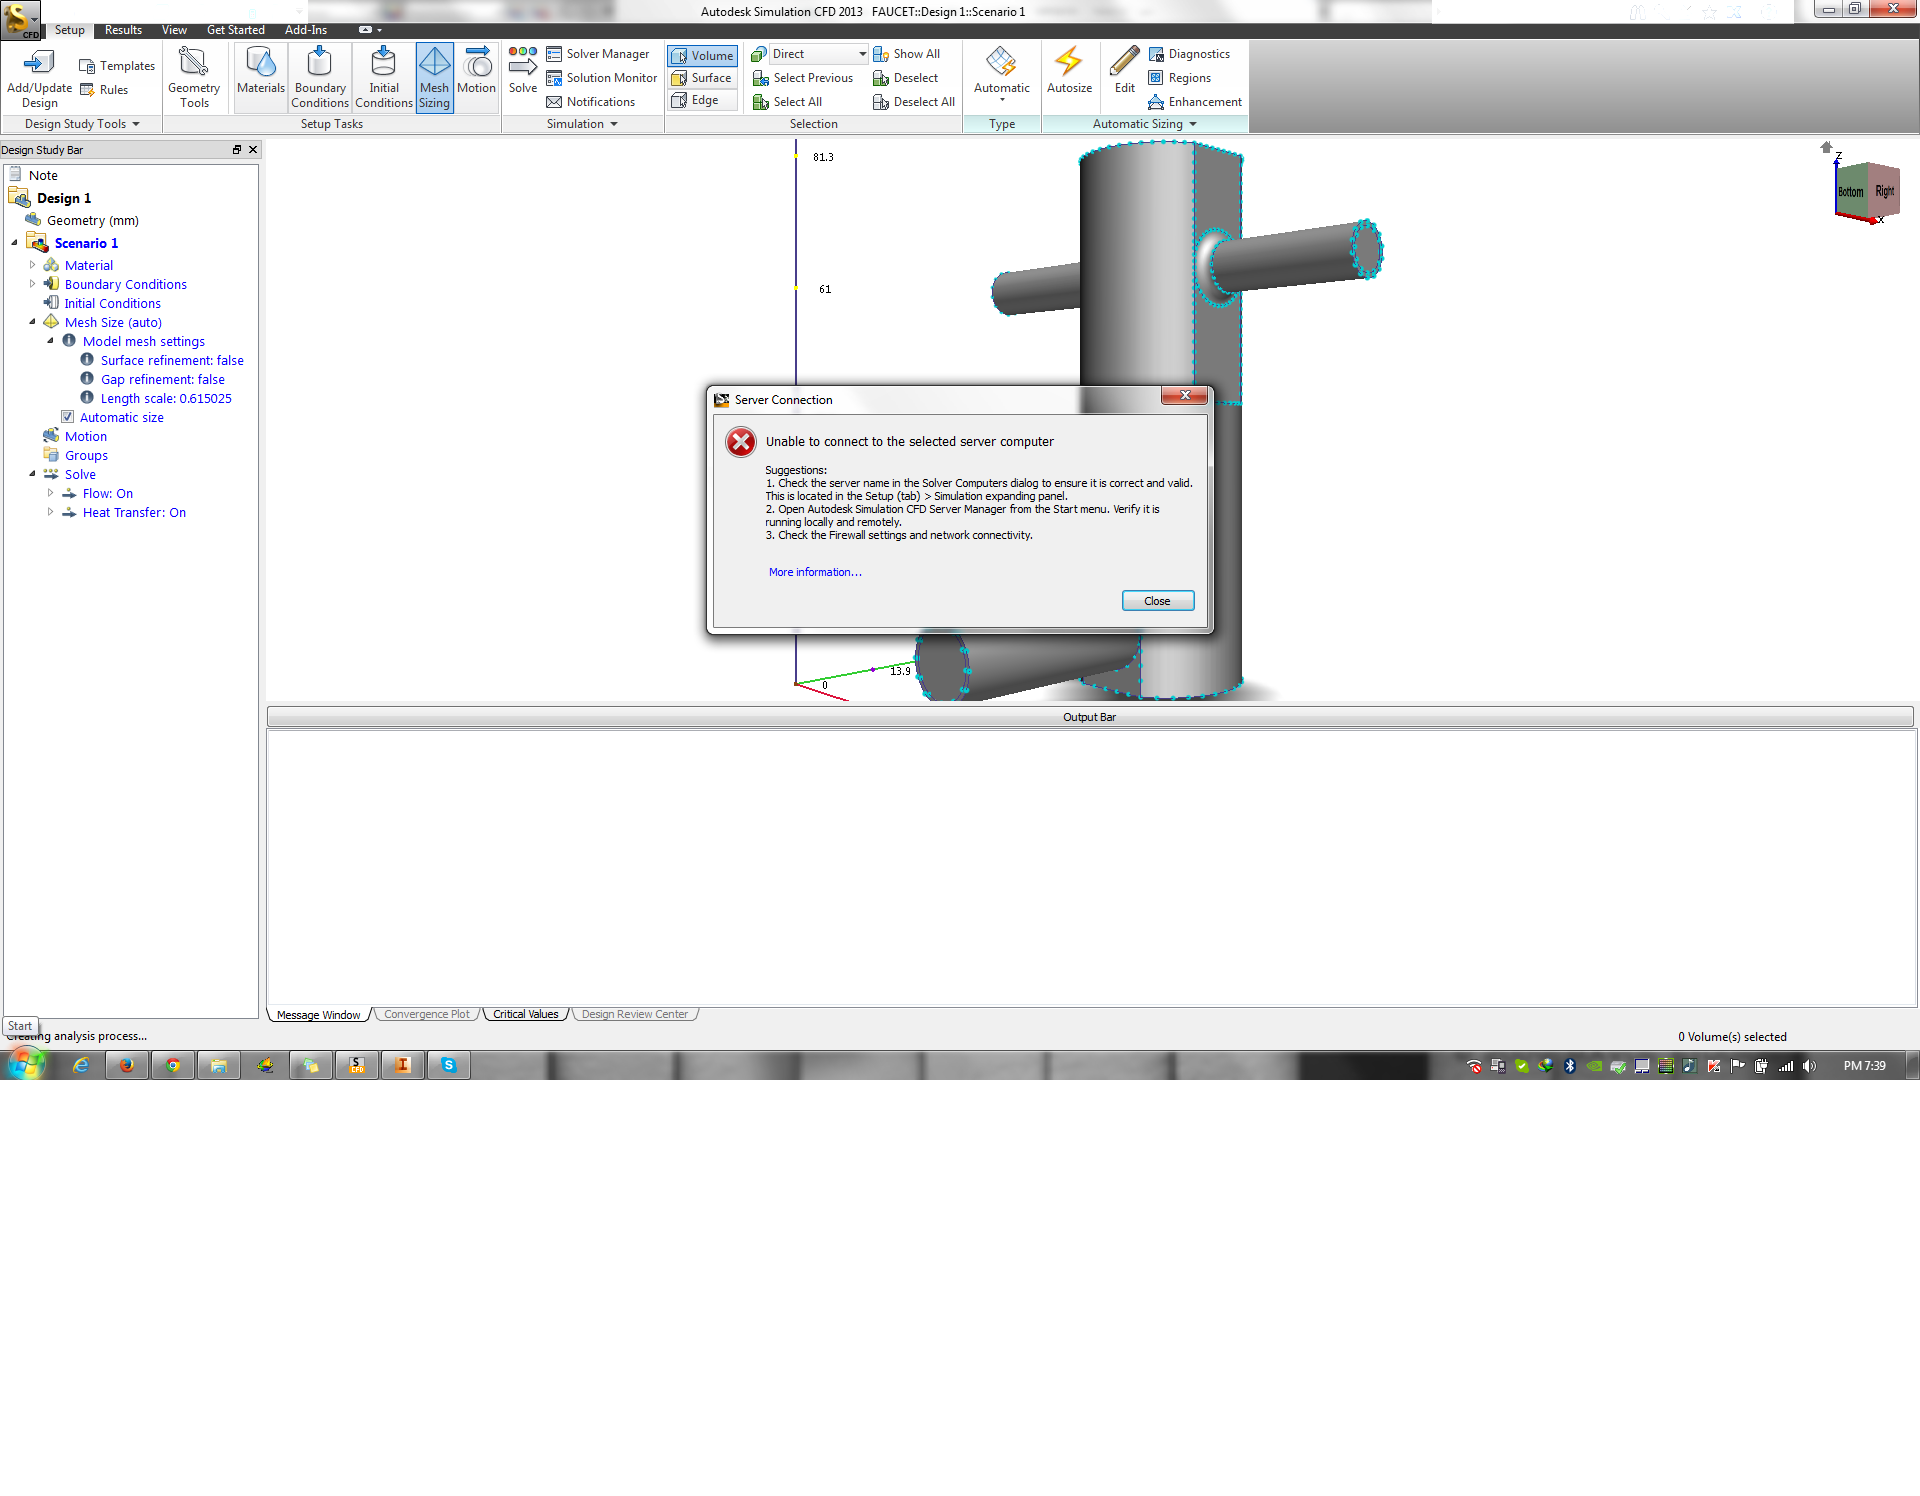 unable to connect to the selected server computer autodesk rh forums autodesk com Autodesk Simulation CFD 2014 Autodesk Inventor 2014